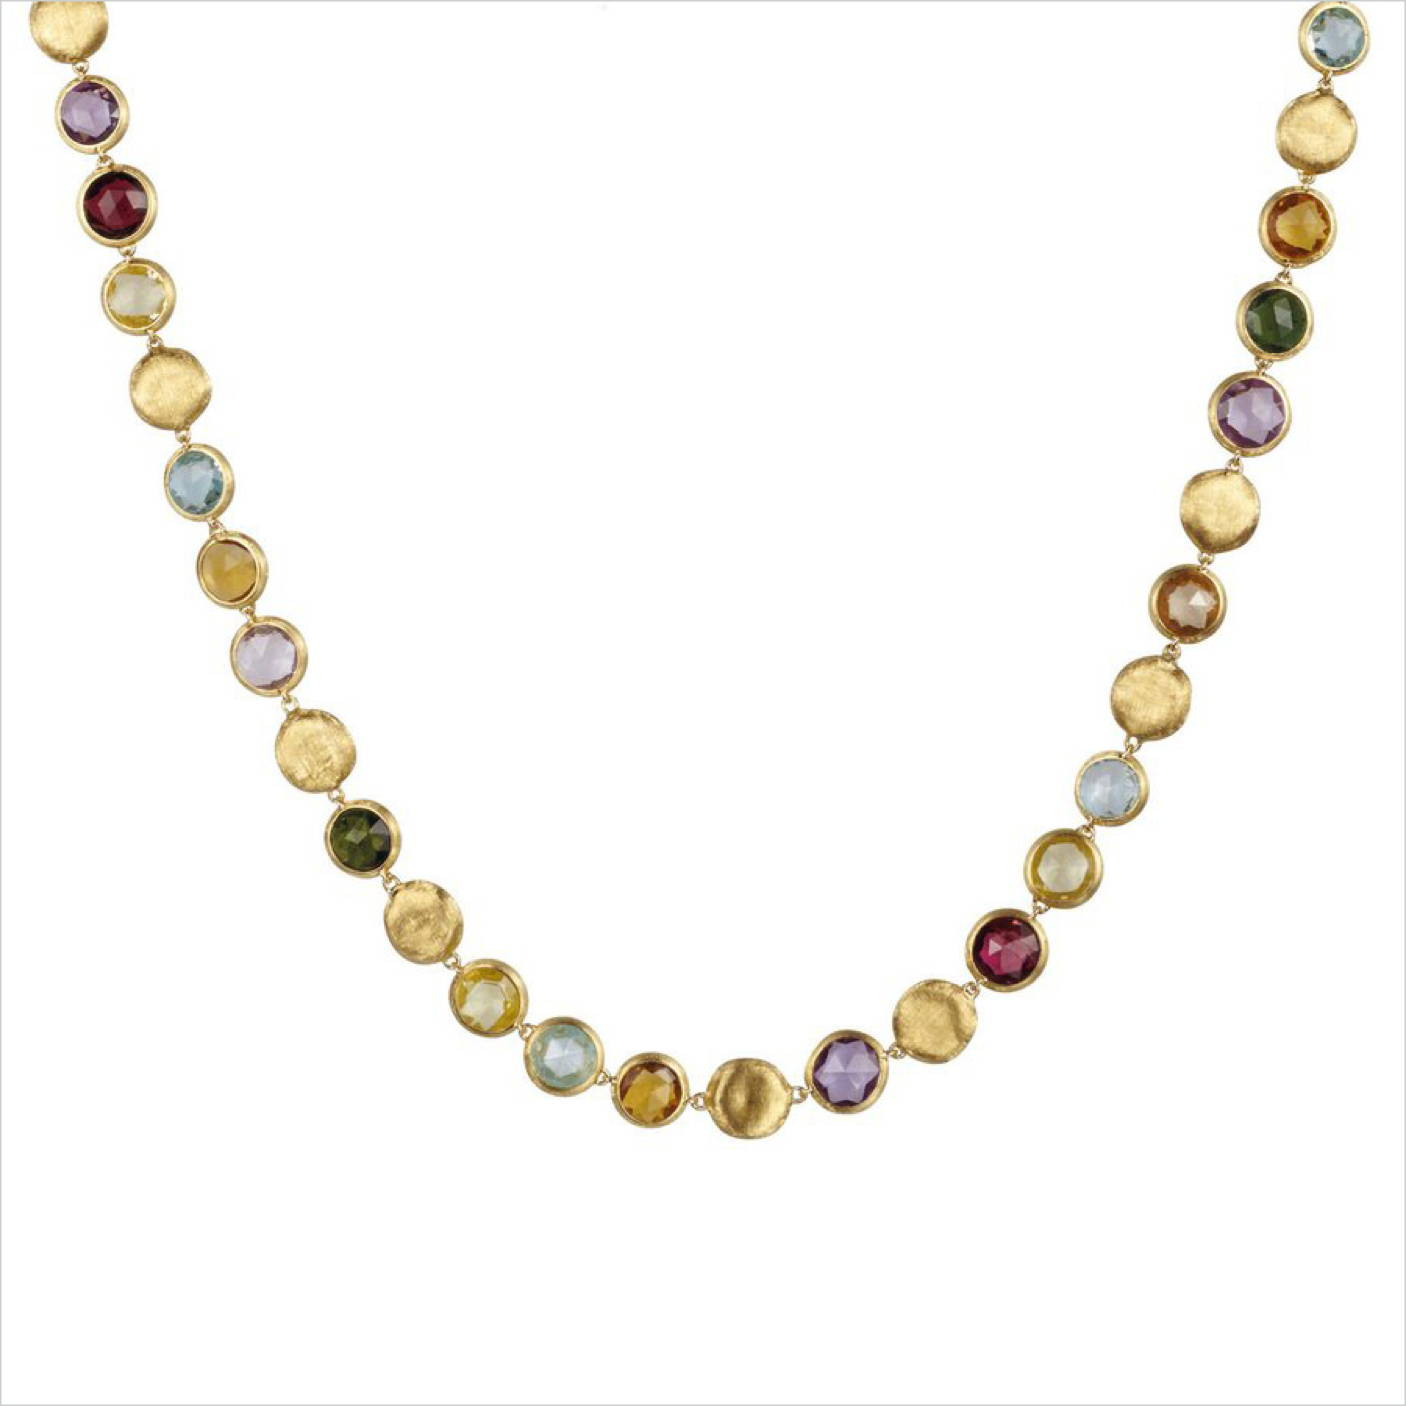 Marco Bicego 18K Yellow Gold and Mixed Gemstone Collar Necklace